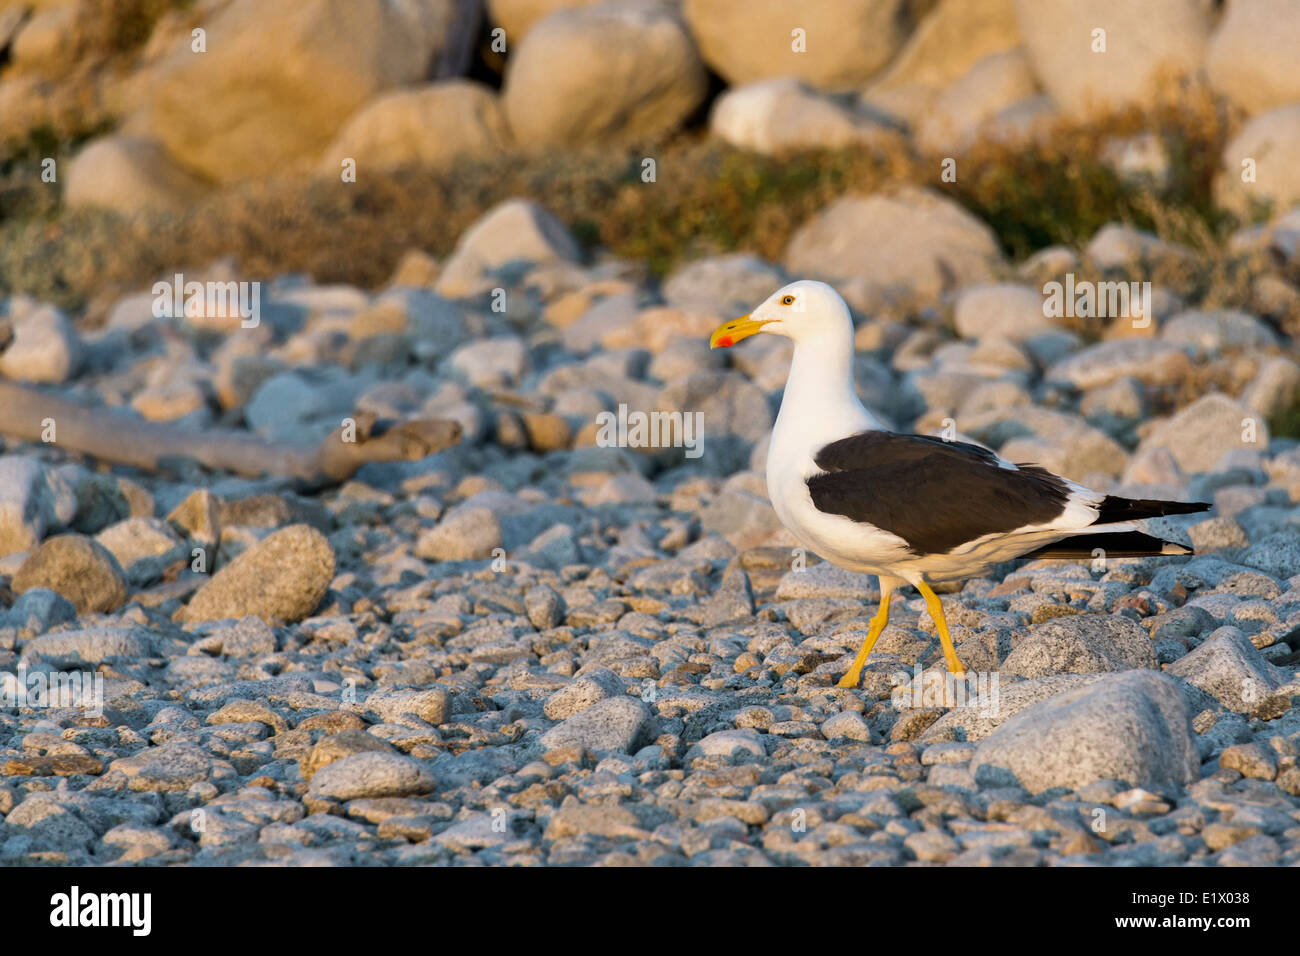 Yellow-footed gull (Larus livens) on the beach, Isla San Francisco, Baja, Mexico Stock Photo